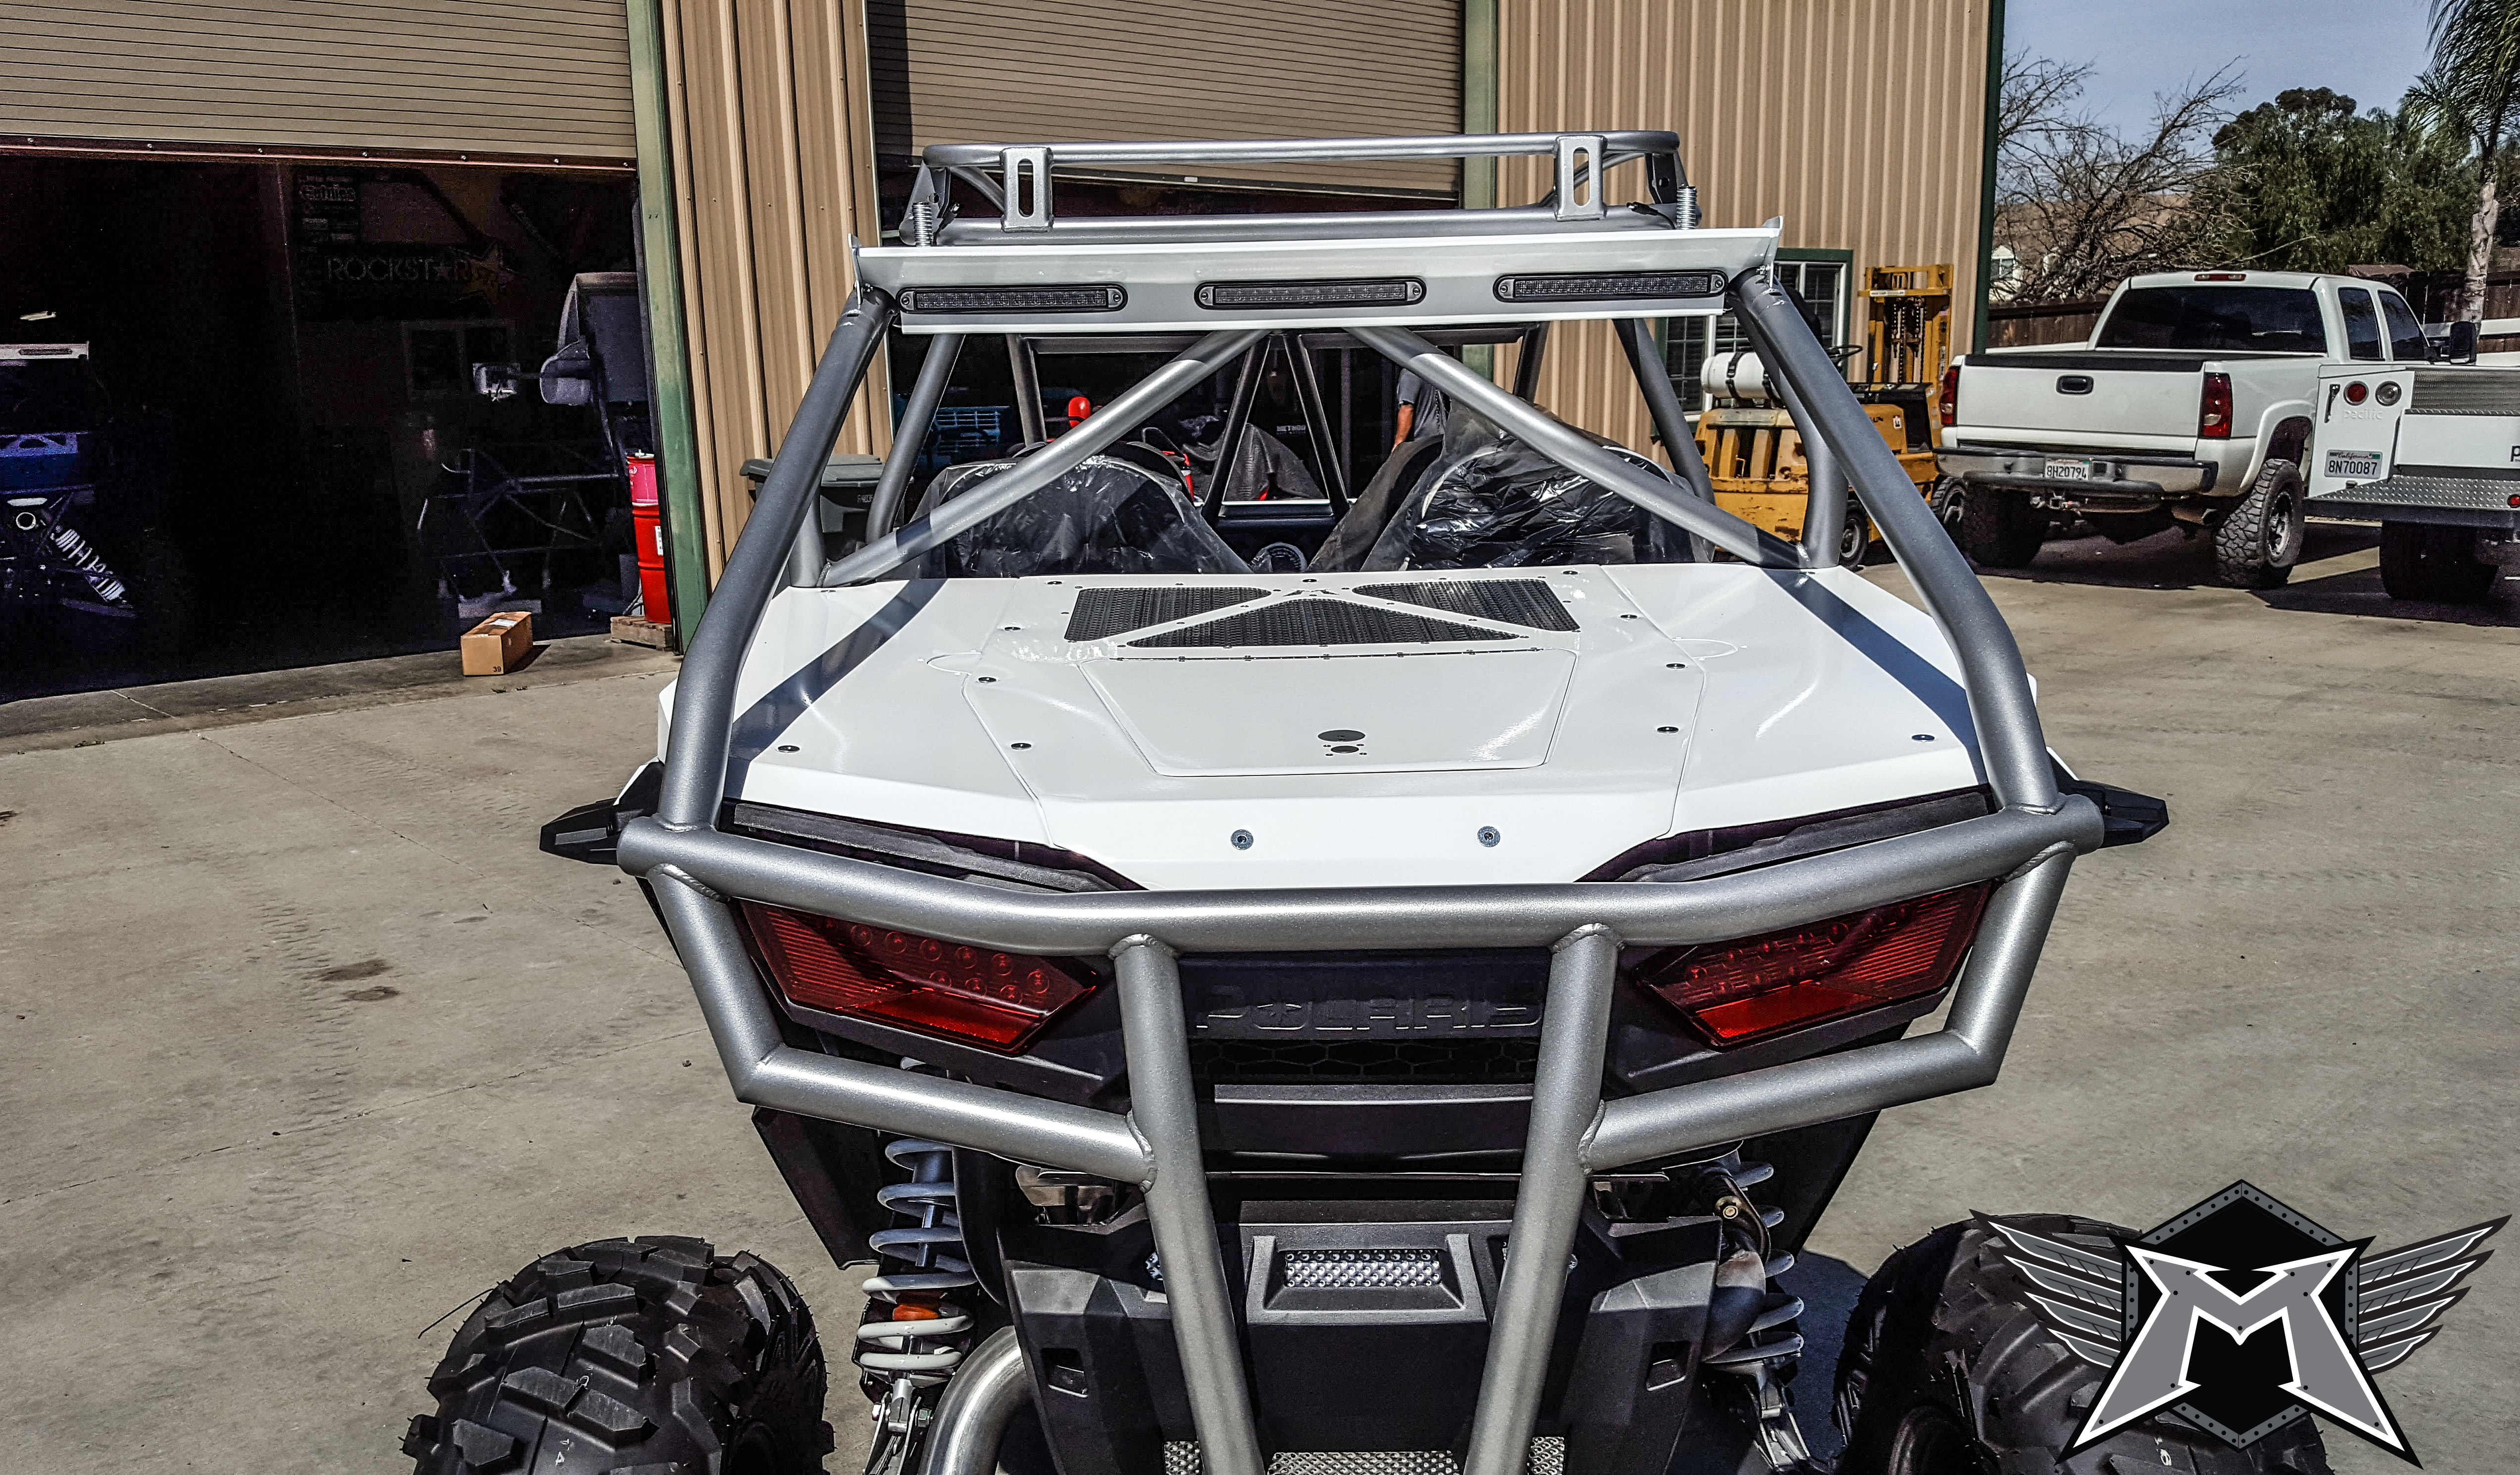 Madigan Motorpsorts Polaris Rzr Xp 1000 Roll Cage With